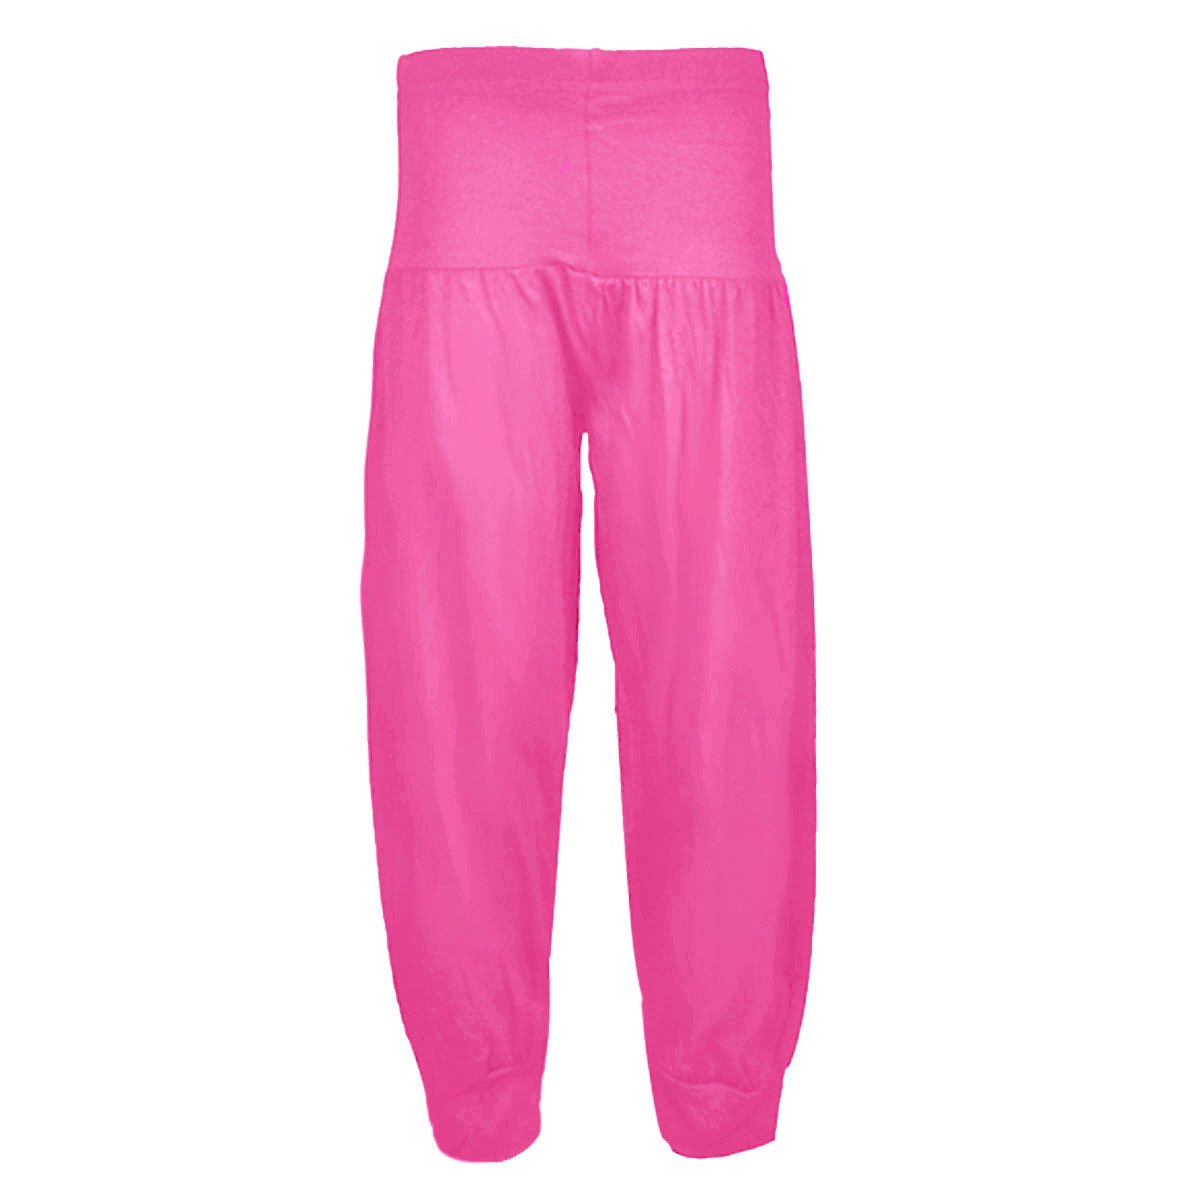 Miss Vanilla Girls Kids Plain Alibaba Harem Pant Trousers Age 7-13 Years